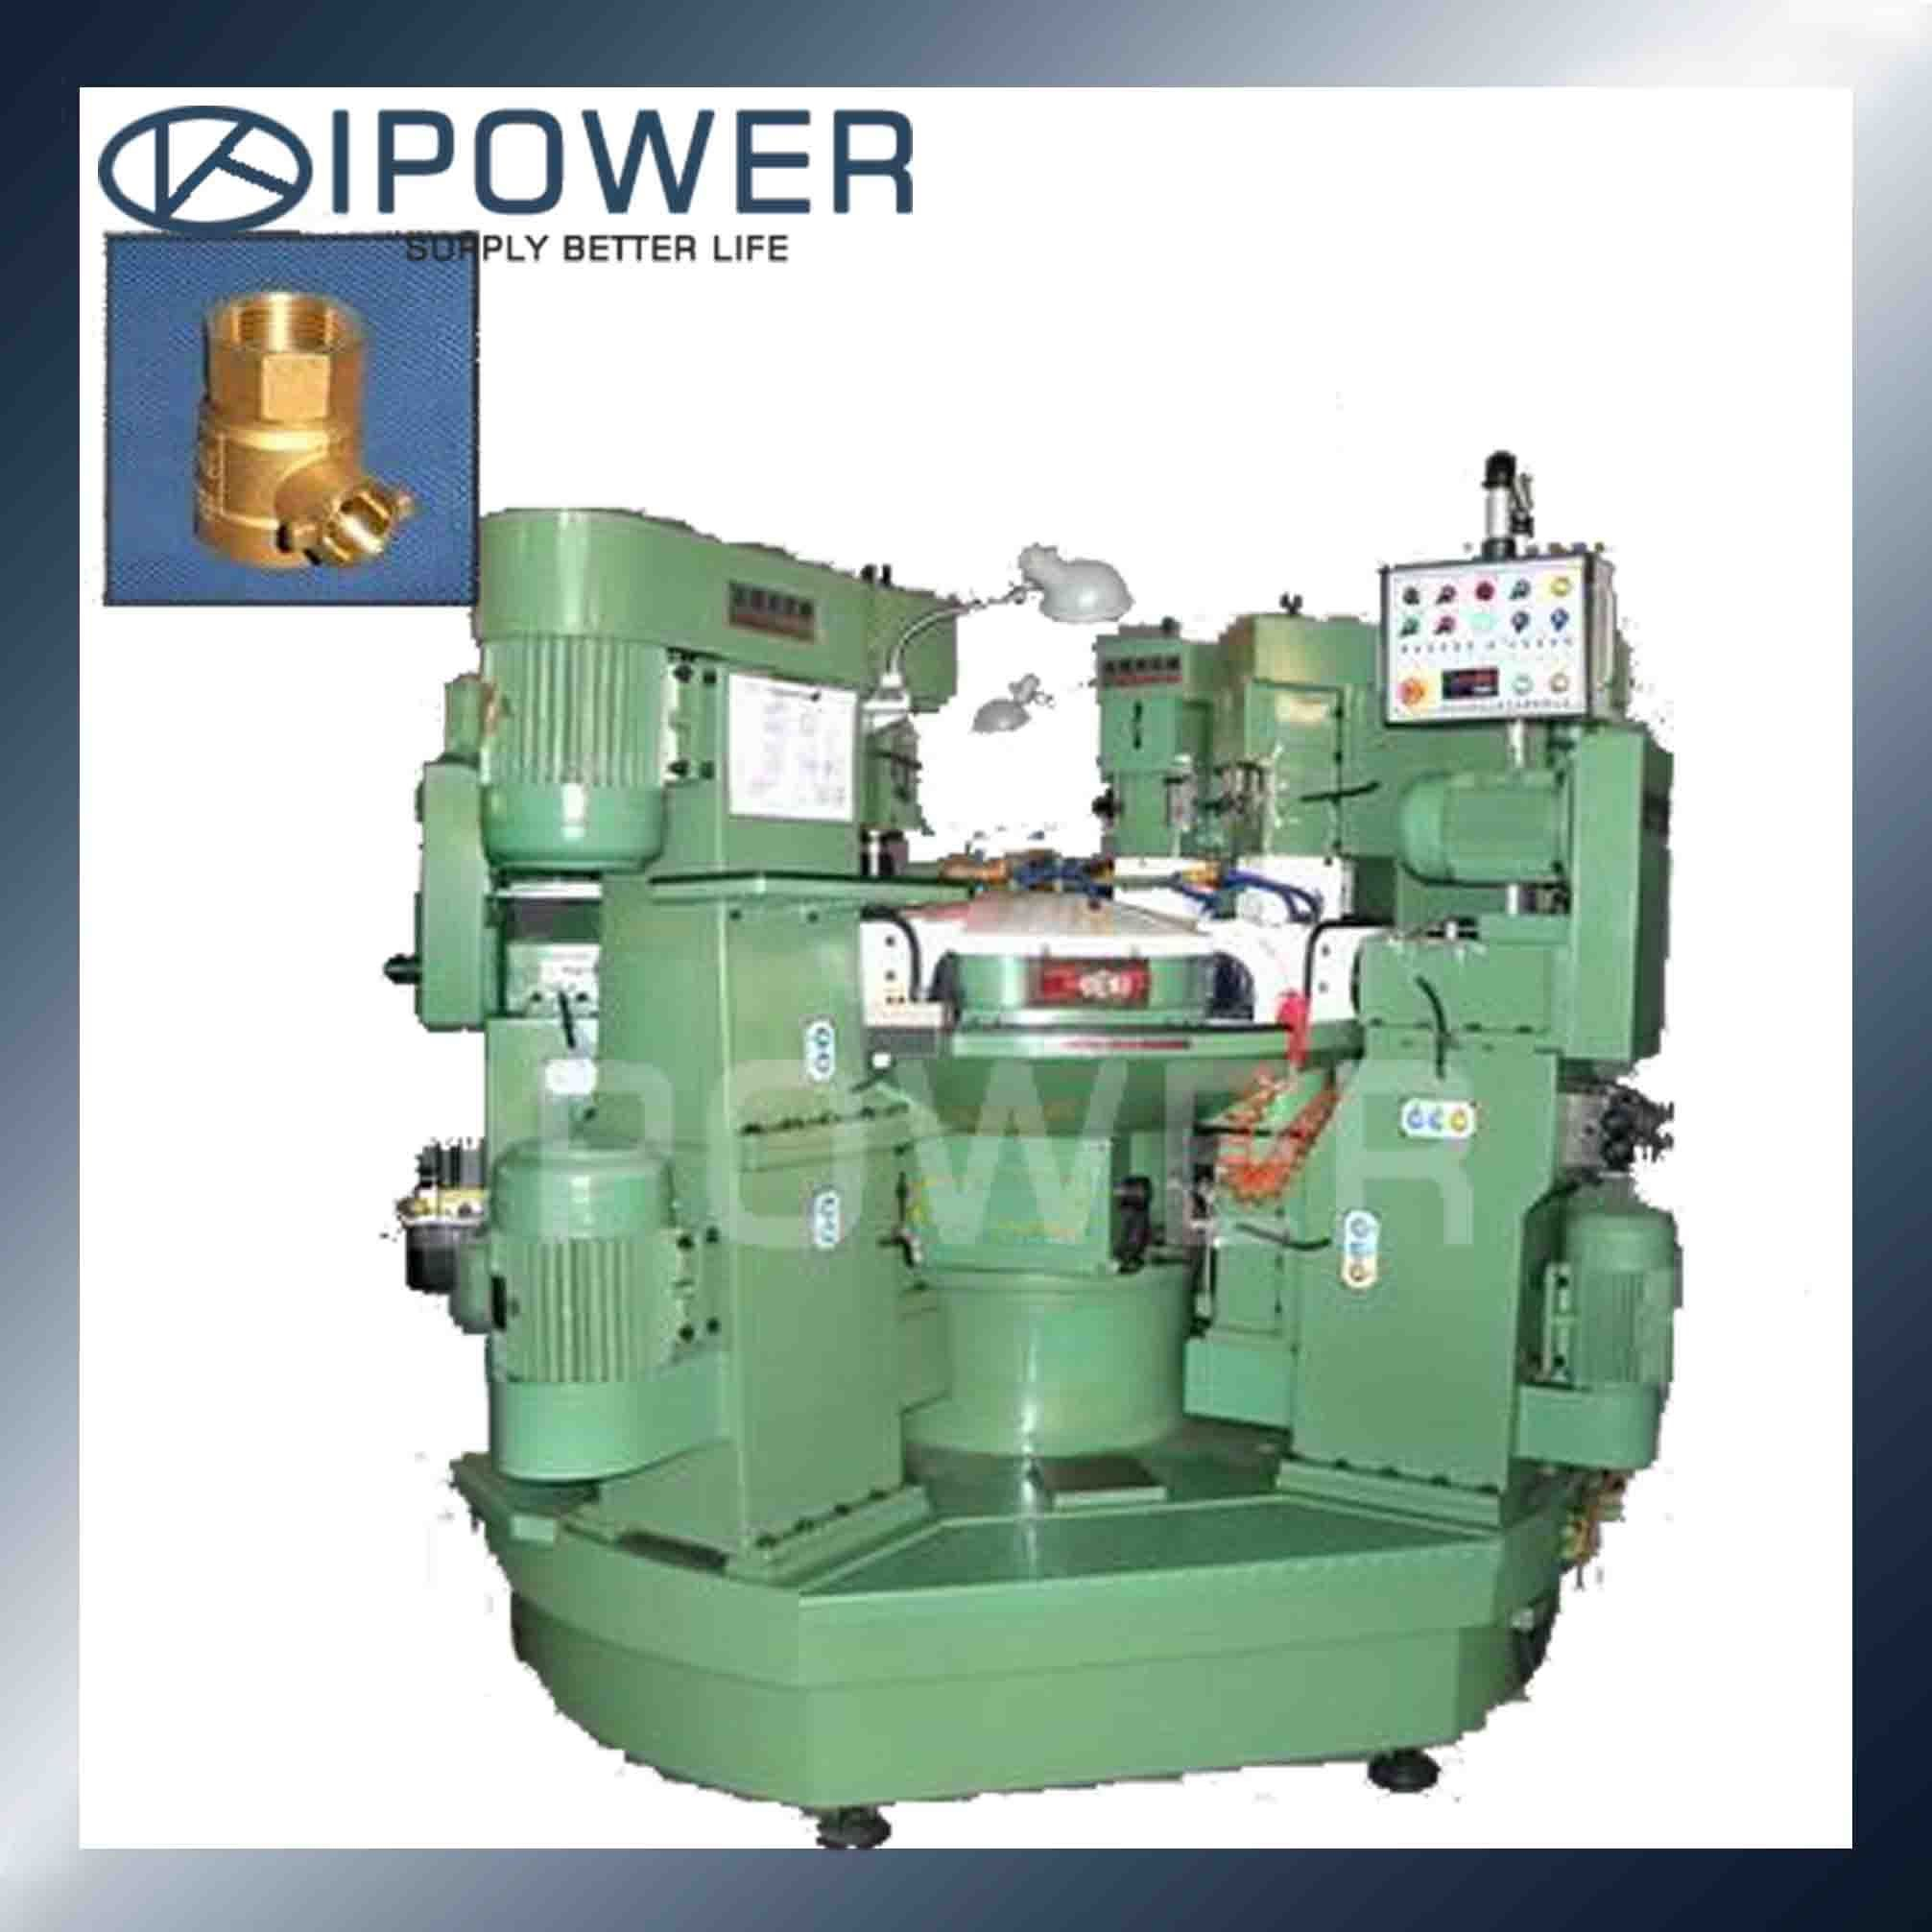 Ball Valve Body Rotary Transfer and Unit Machine The